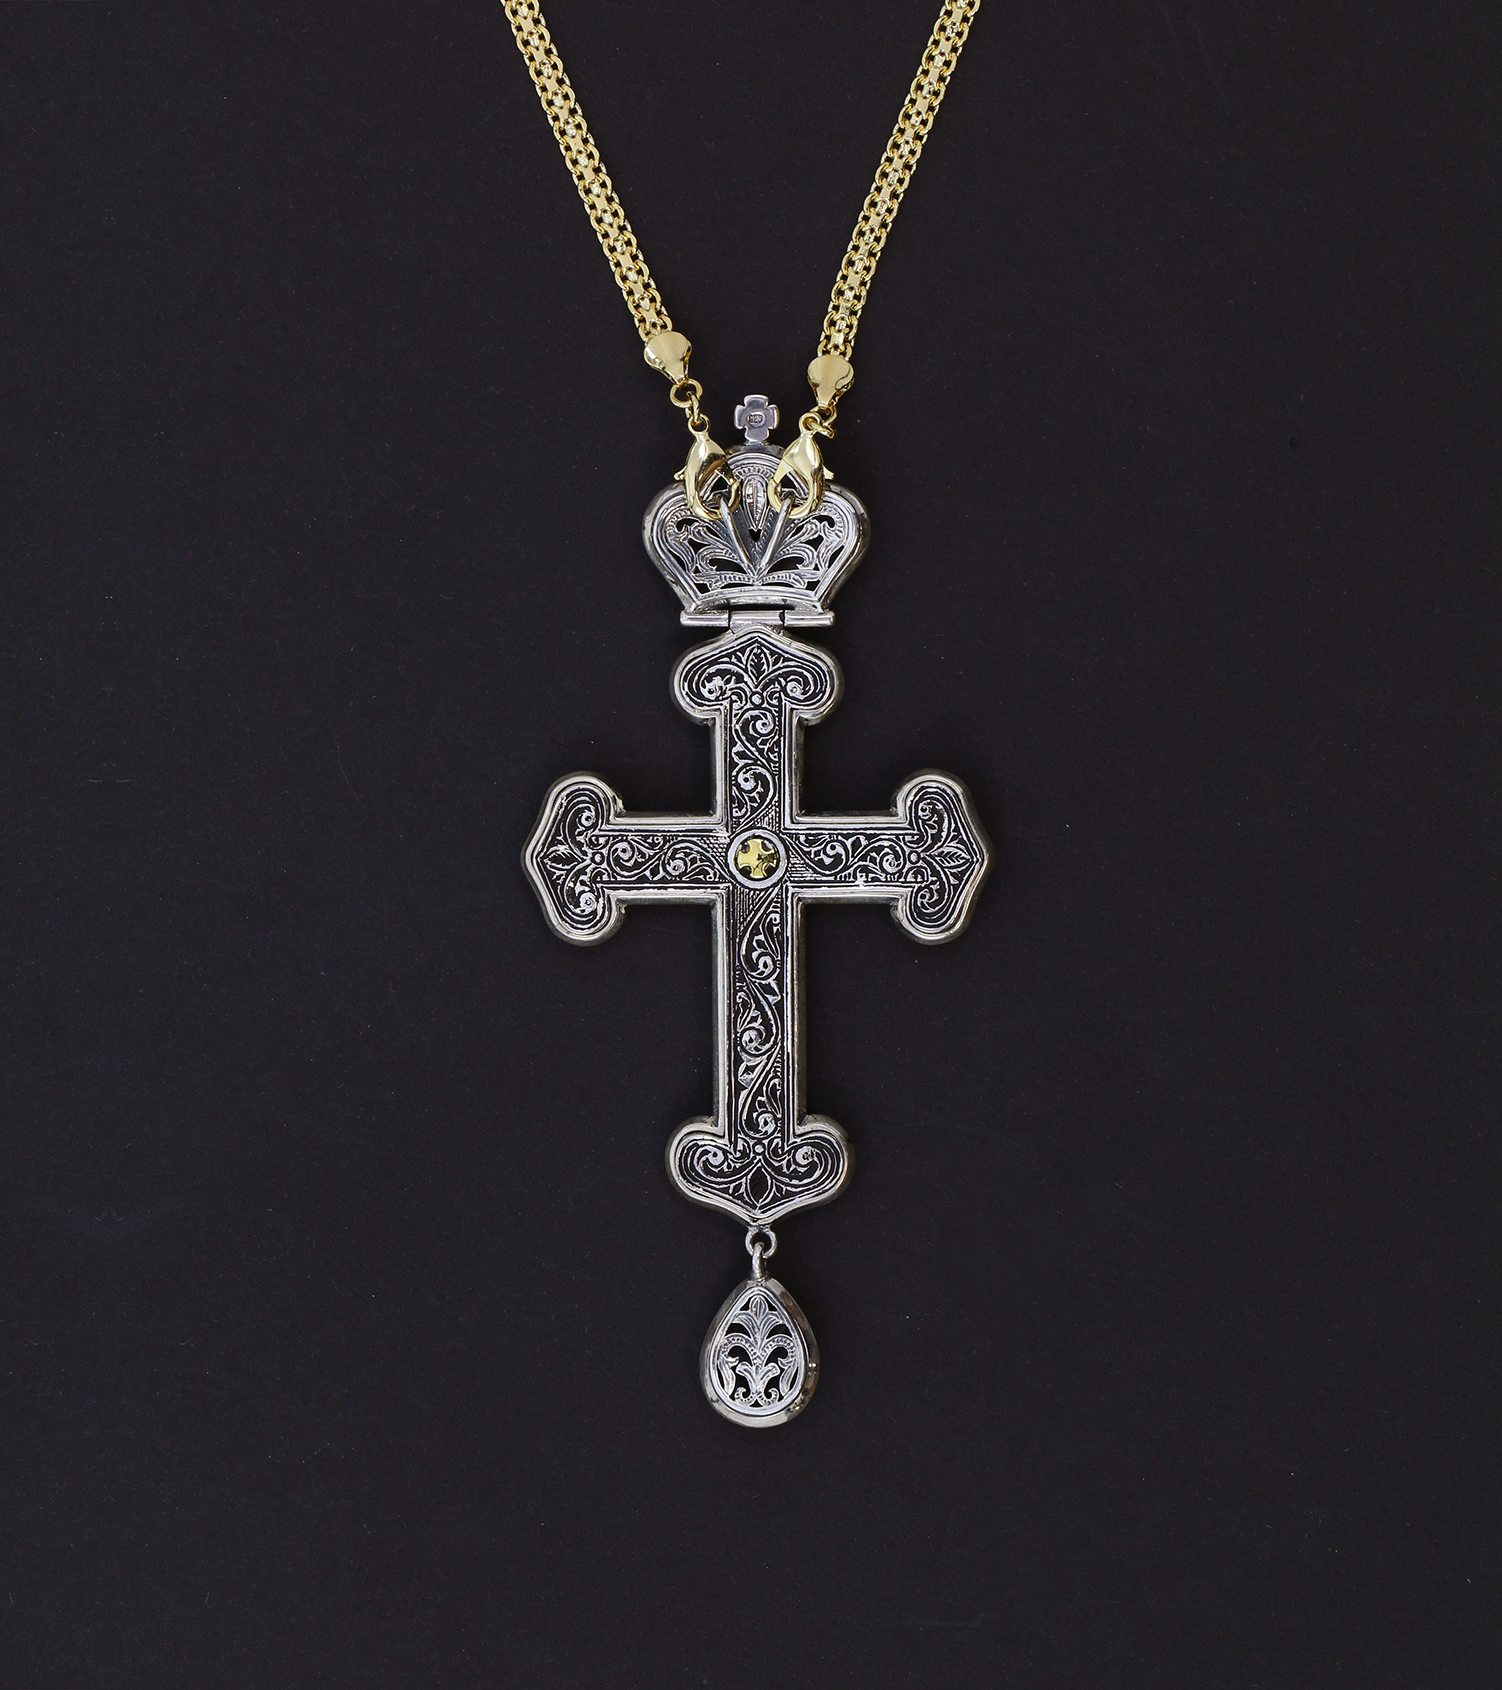 Alpha omega church supplies orthodox ecclesiastical art vestments pectoral cross 468 buycottarizona